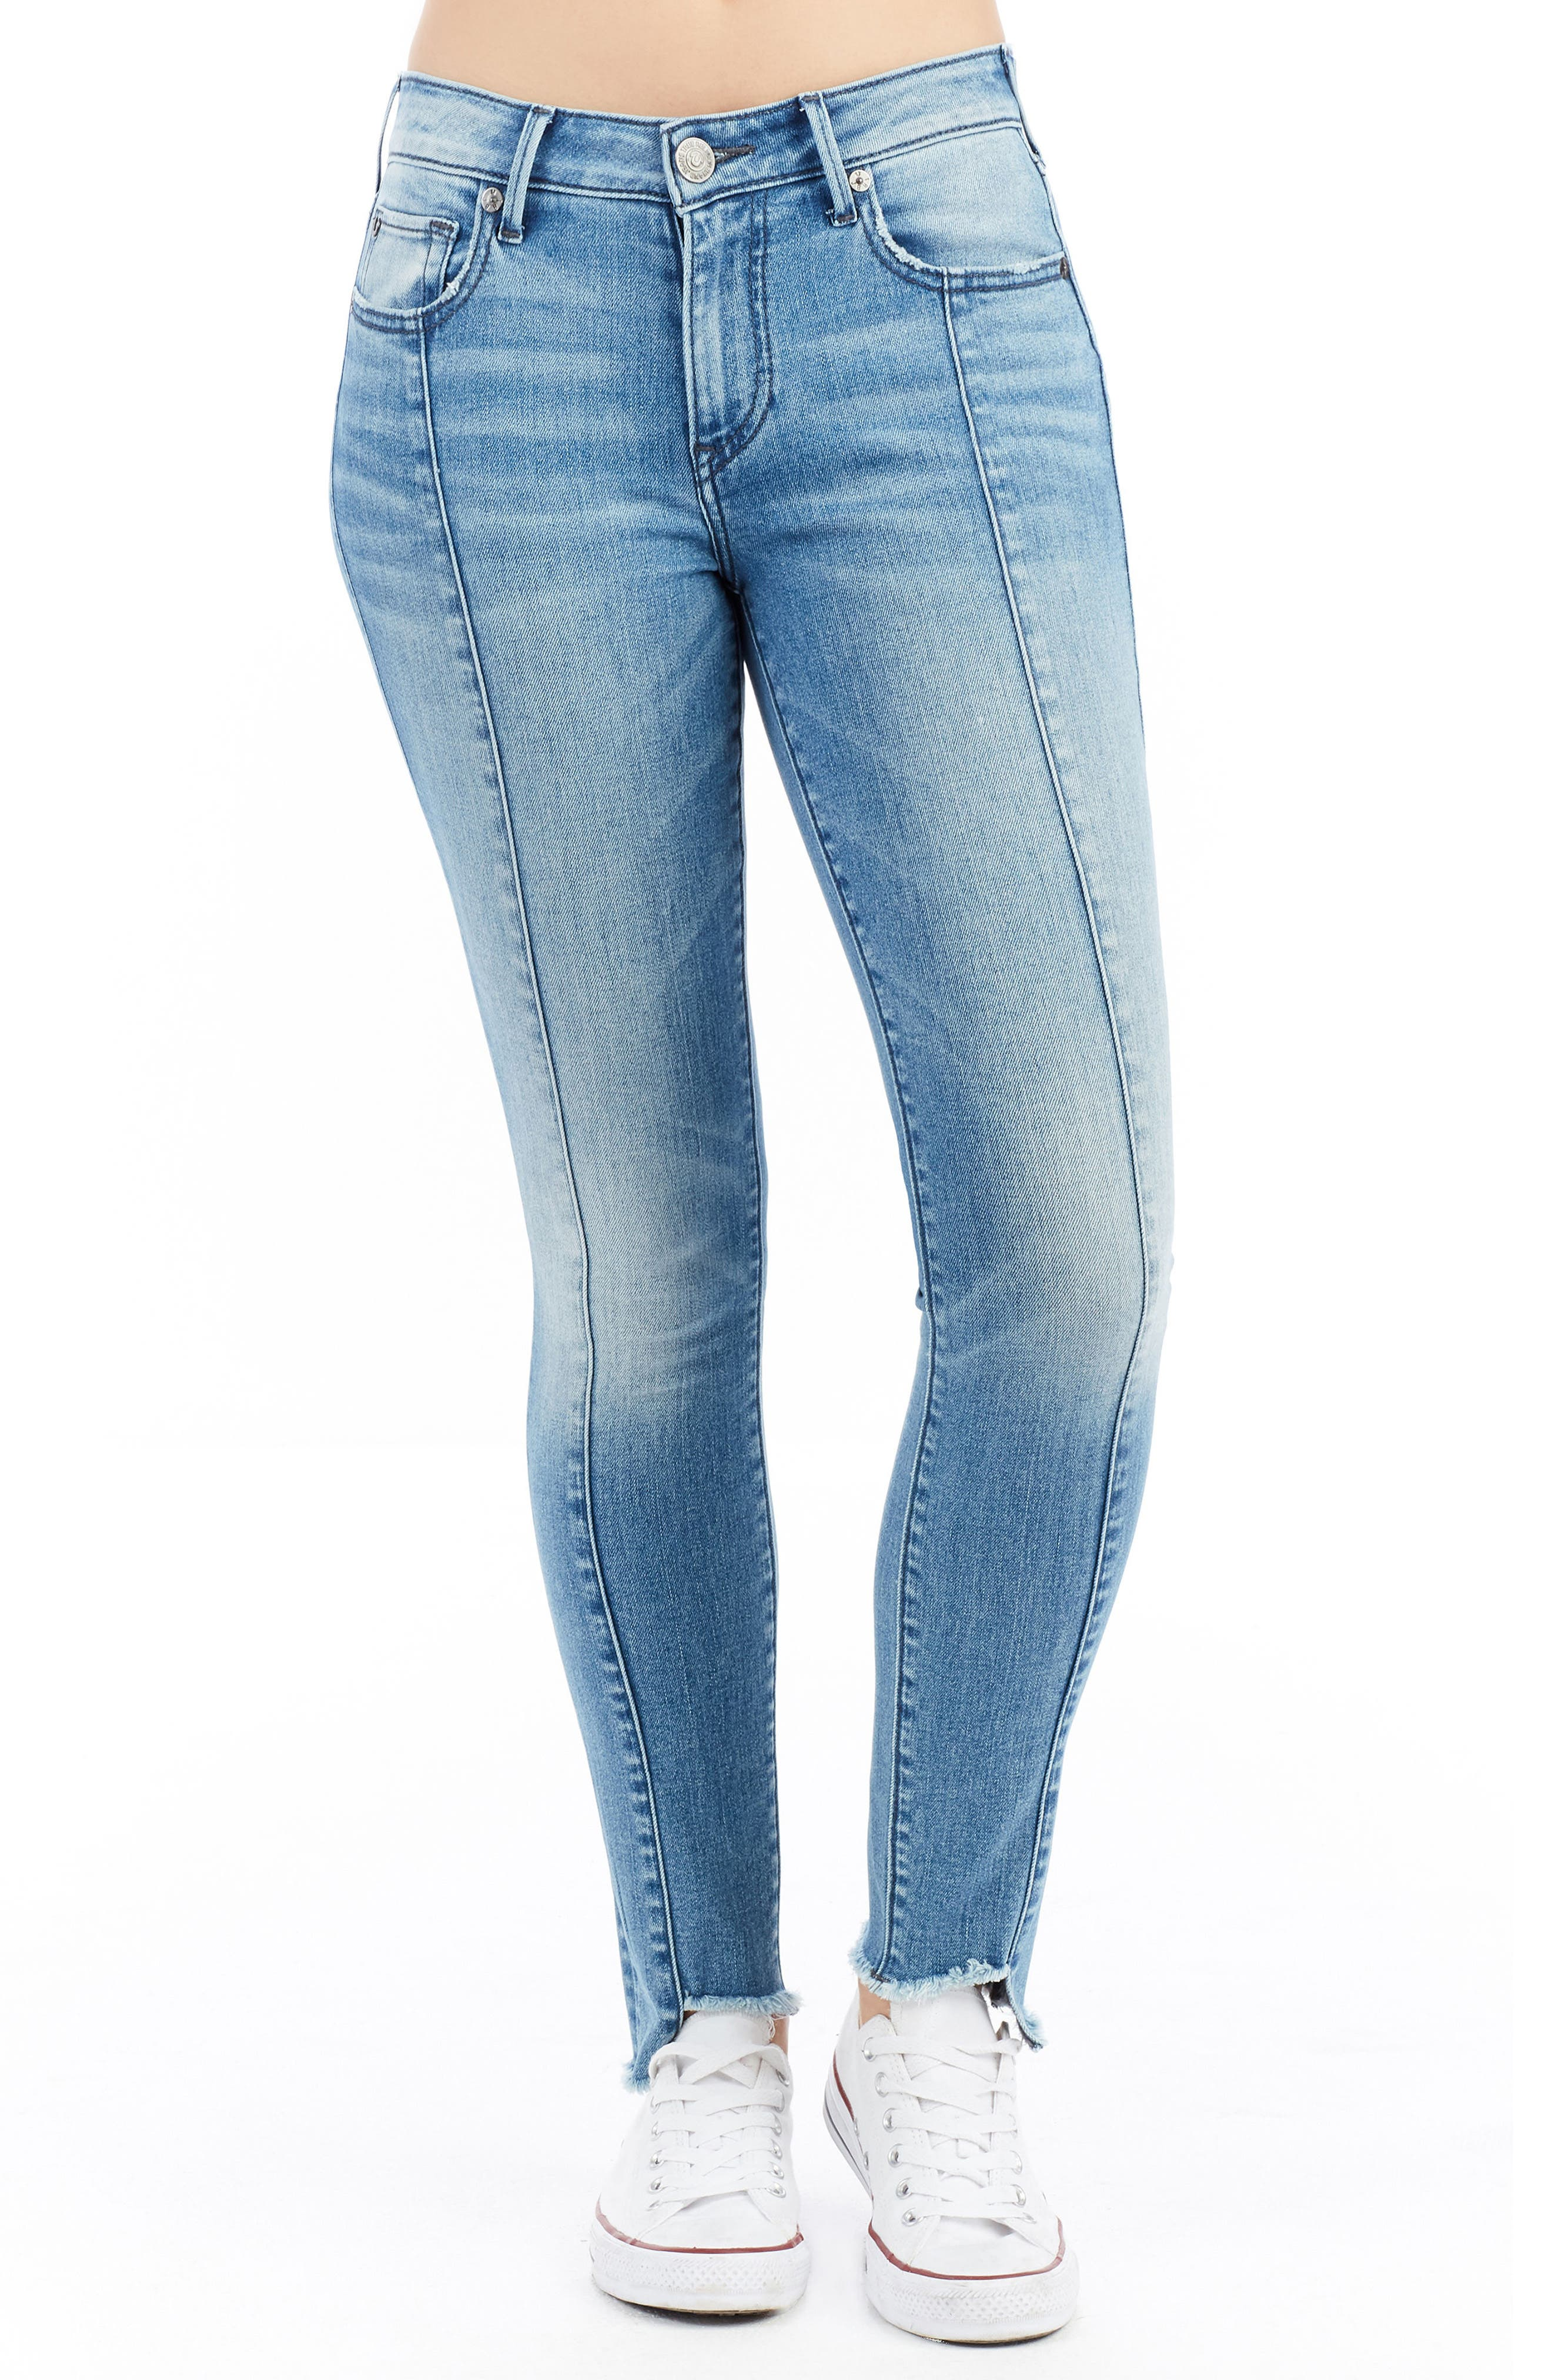 Jennie Curvy Ankle Skinny Jeans,                         Main,                         color, Island Fever